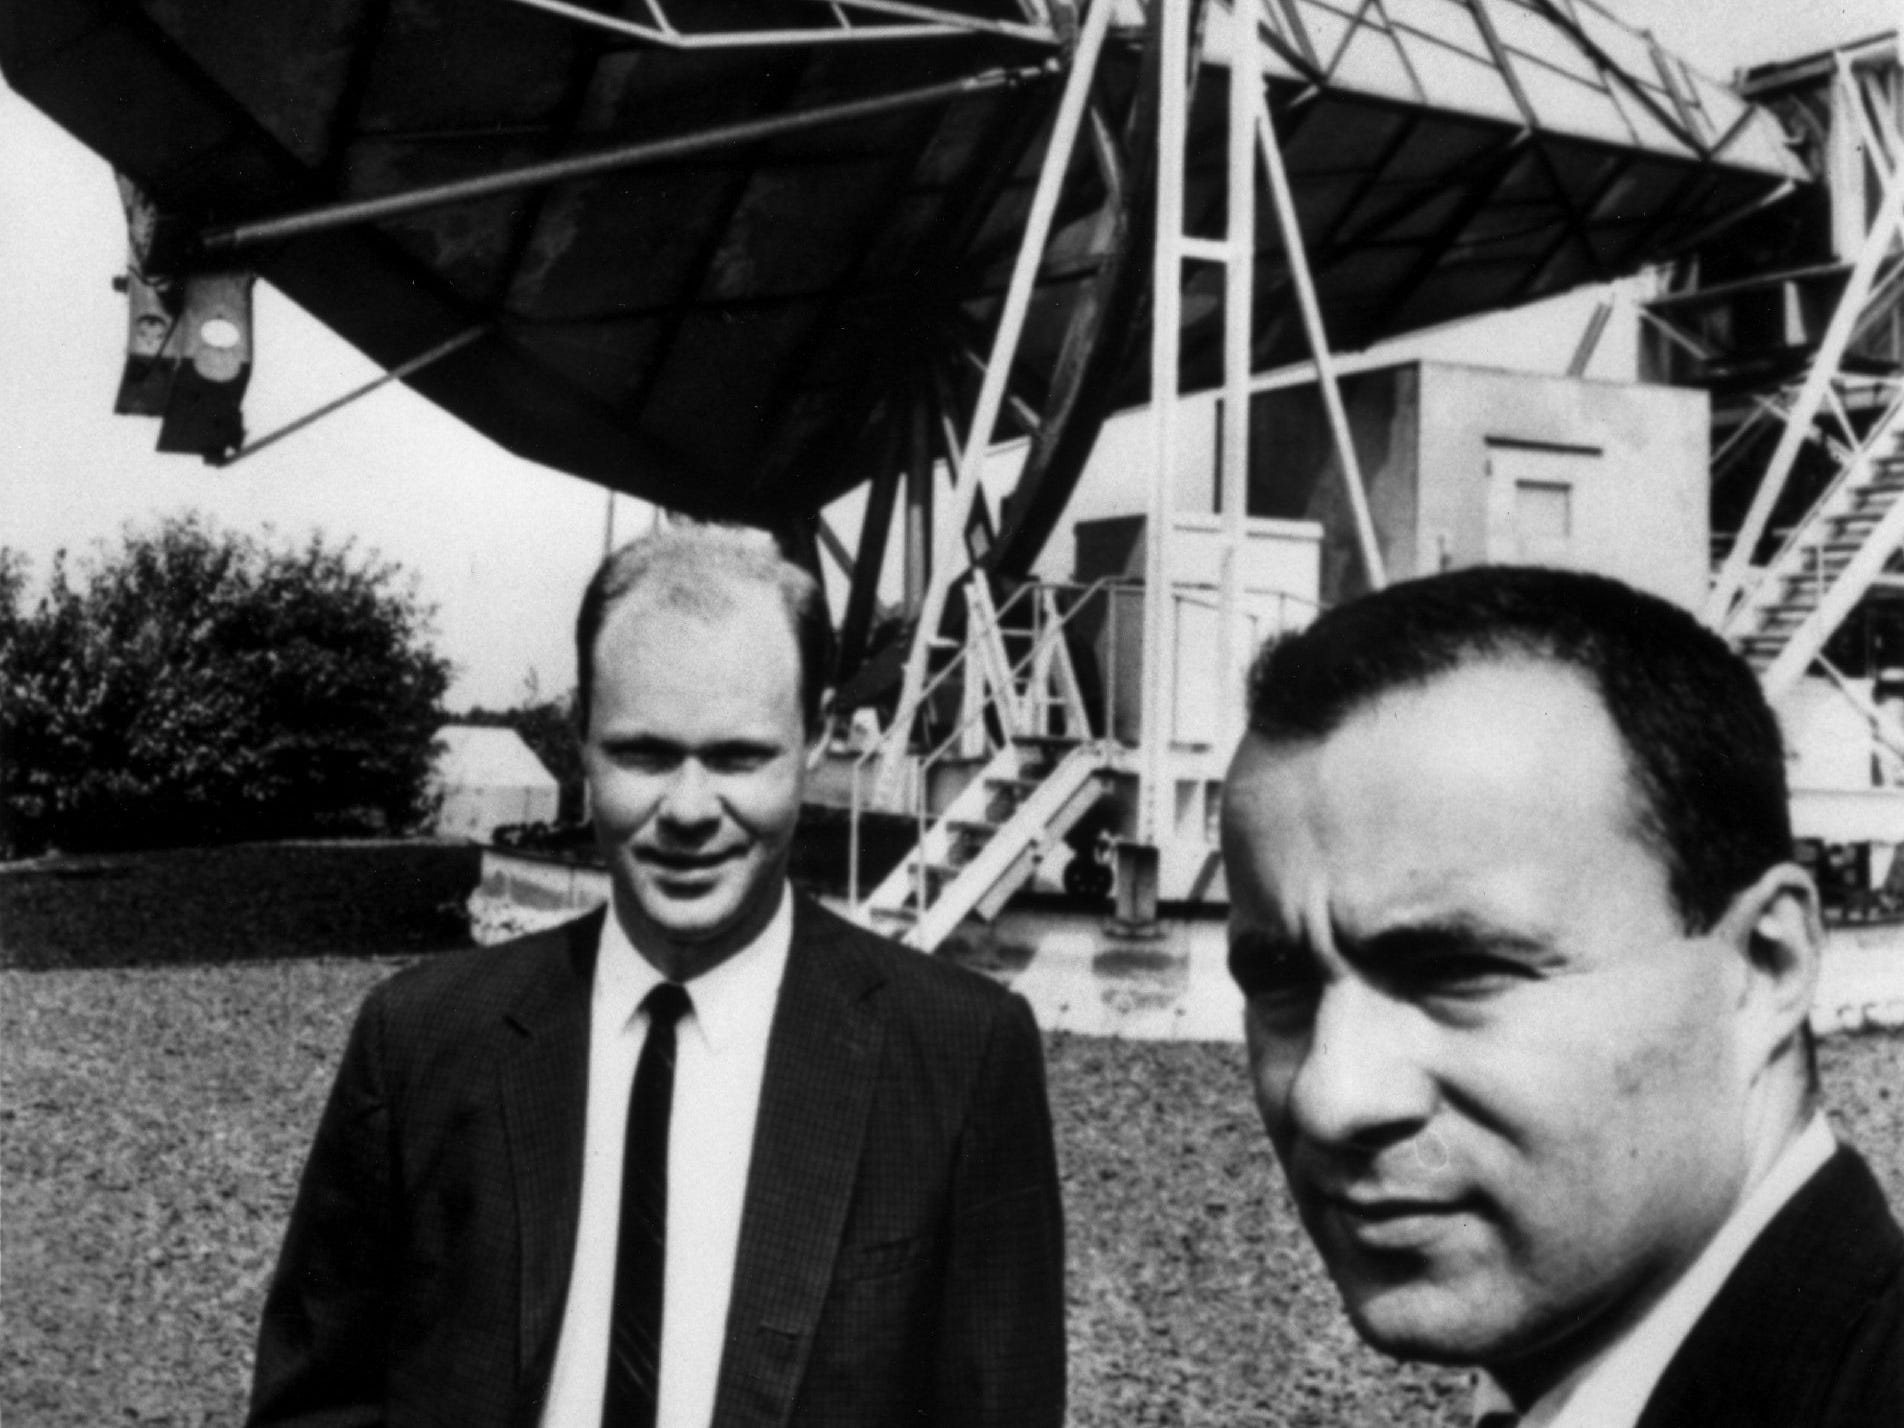 "In this undated handout photo released by Alcatel Lucent, Bell Labs' Robert Wilson, left, and Arno Penzias, 1978 Nobel Prize winners for their discovery of the ""Big Bang"" theory of the universe's creation, are photographed in front of the famous Horn Antenna in Holmdel, NJ From the ubiquitous technology made possible by Bell Labs' invention of the transistor and laser to its scientists helping prove how the universe began, the lab has greatly influenced technology and culture. (AP Photo/Alcatel Lucent)"